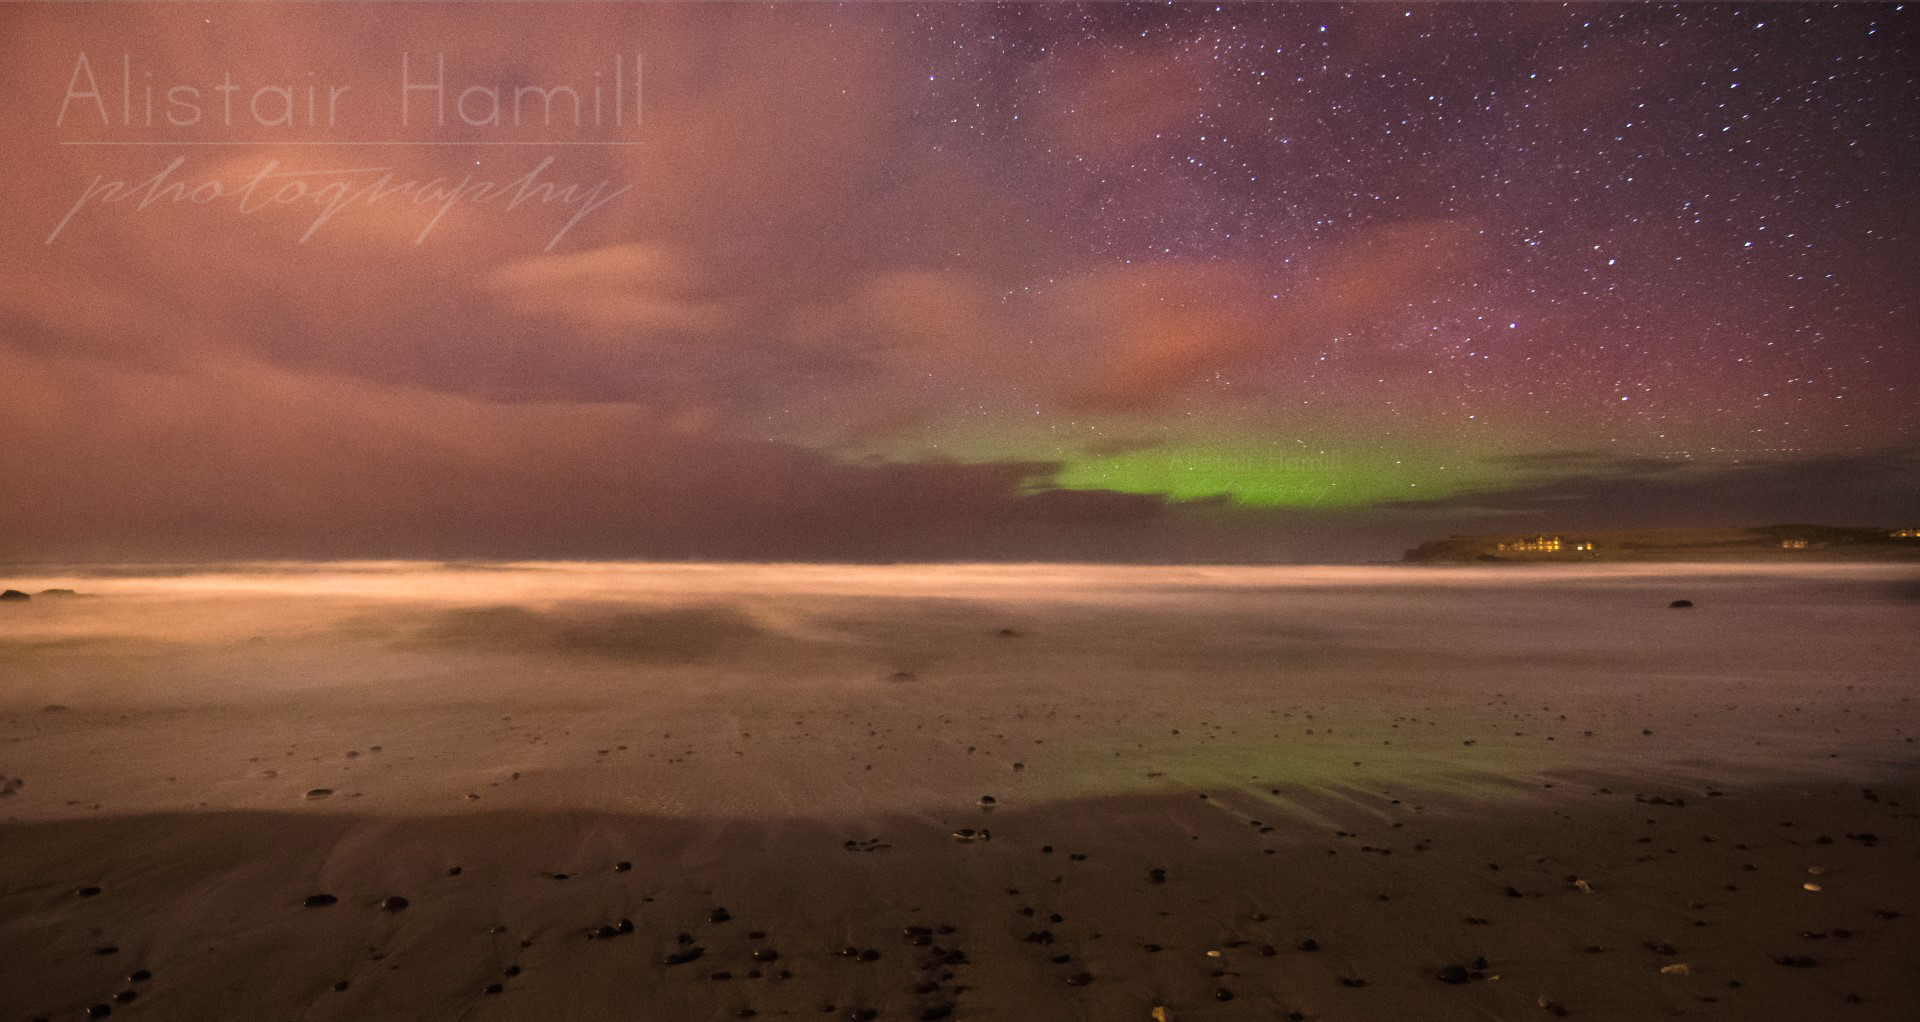 Runkerry Beach, with a hint of aurora green reflecting in the swash